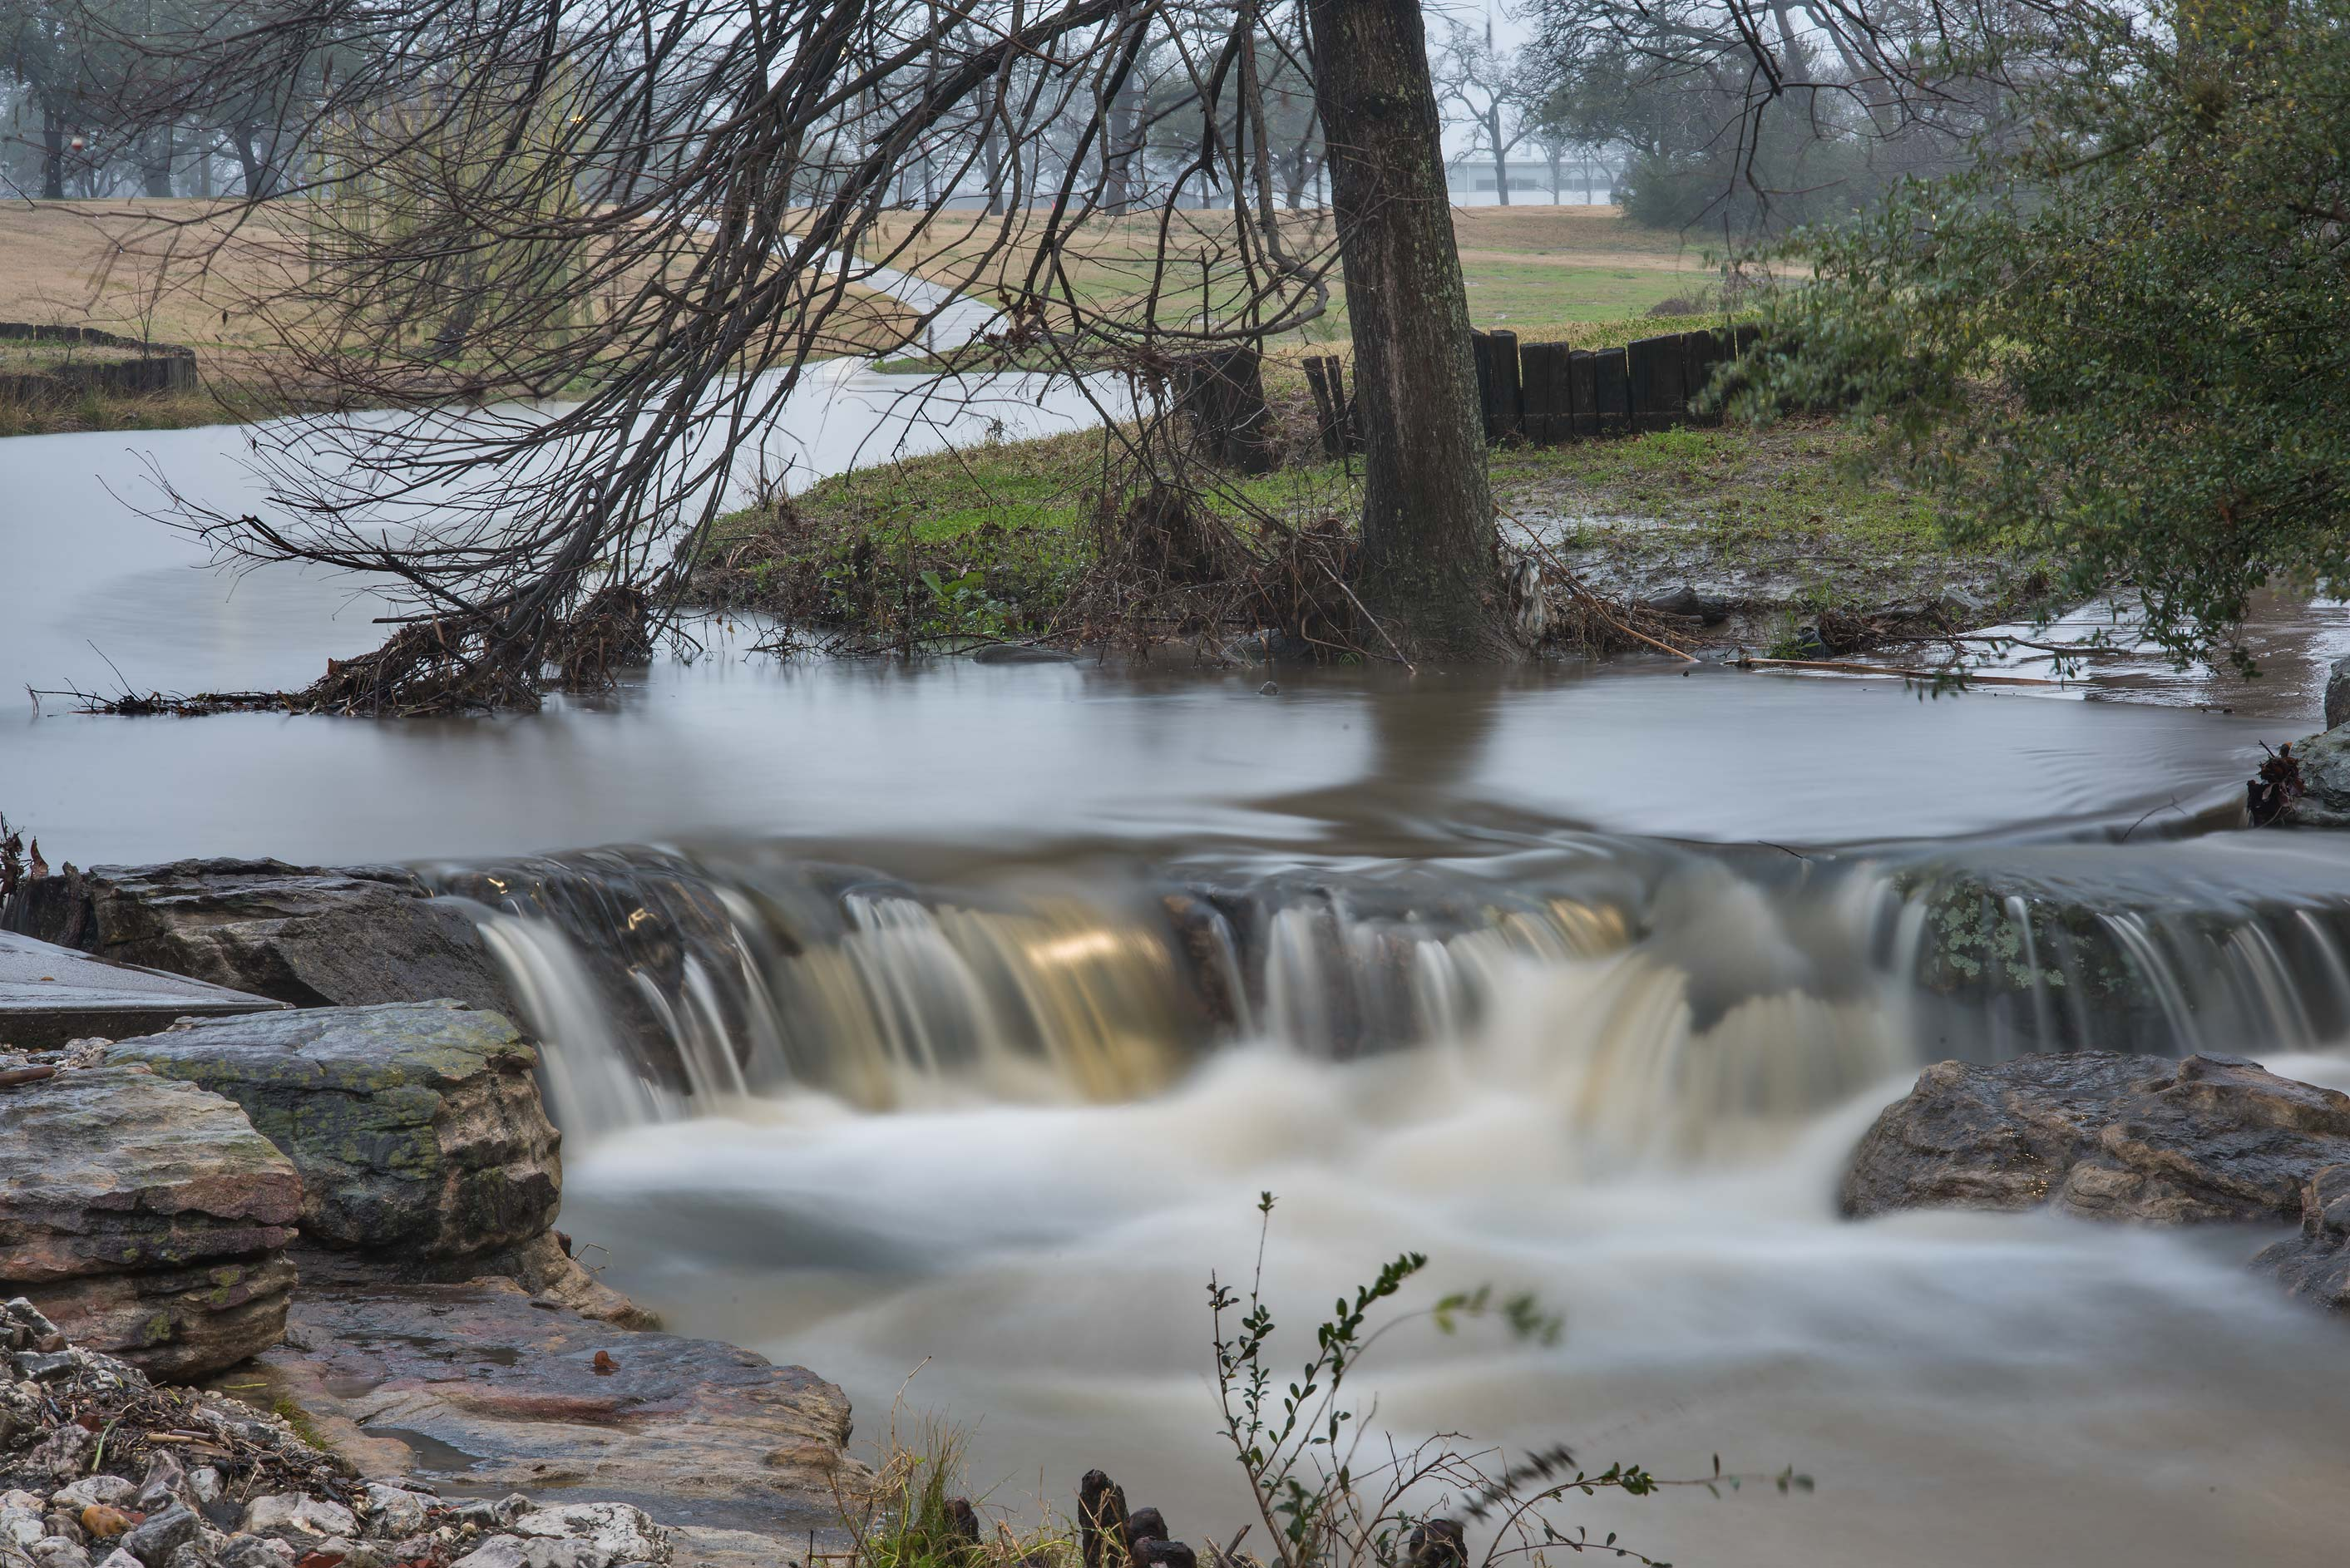 Waterfall over stepping stones after a rain in...M University. College Station, Texas